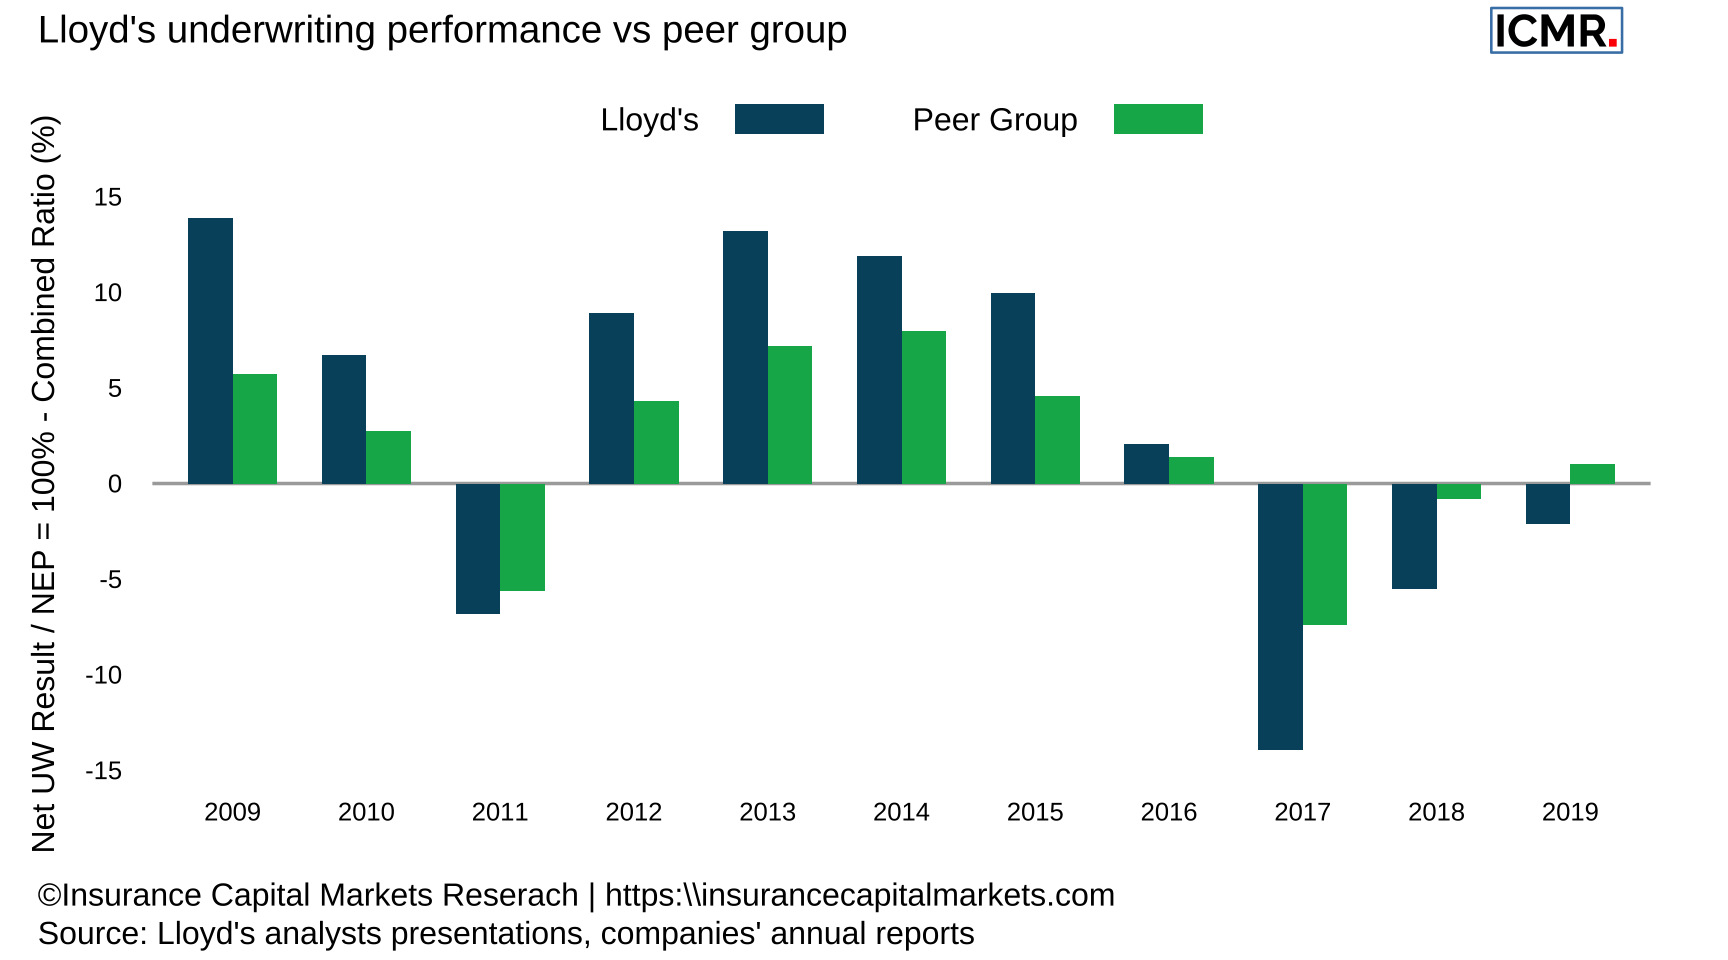 Lloyd's combined ratio performance against peer group. The peer group comprises 13 companies operating in the US, European & Bermudan markets, for 2019: AIG, Allianz, Arch, Chubb, CNA Corp, Everest Re, Hannover Re, Munich Re, Partner Re, SCOR, Swiss Re, Axa XL and Zurich